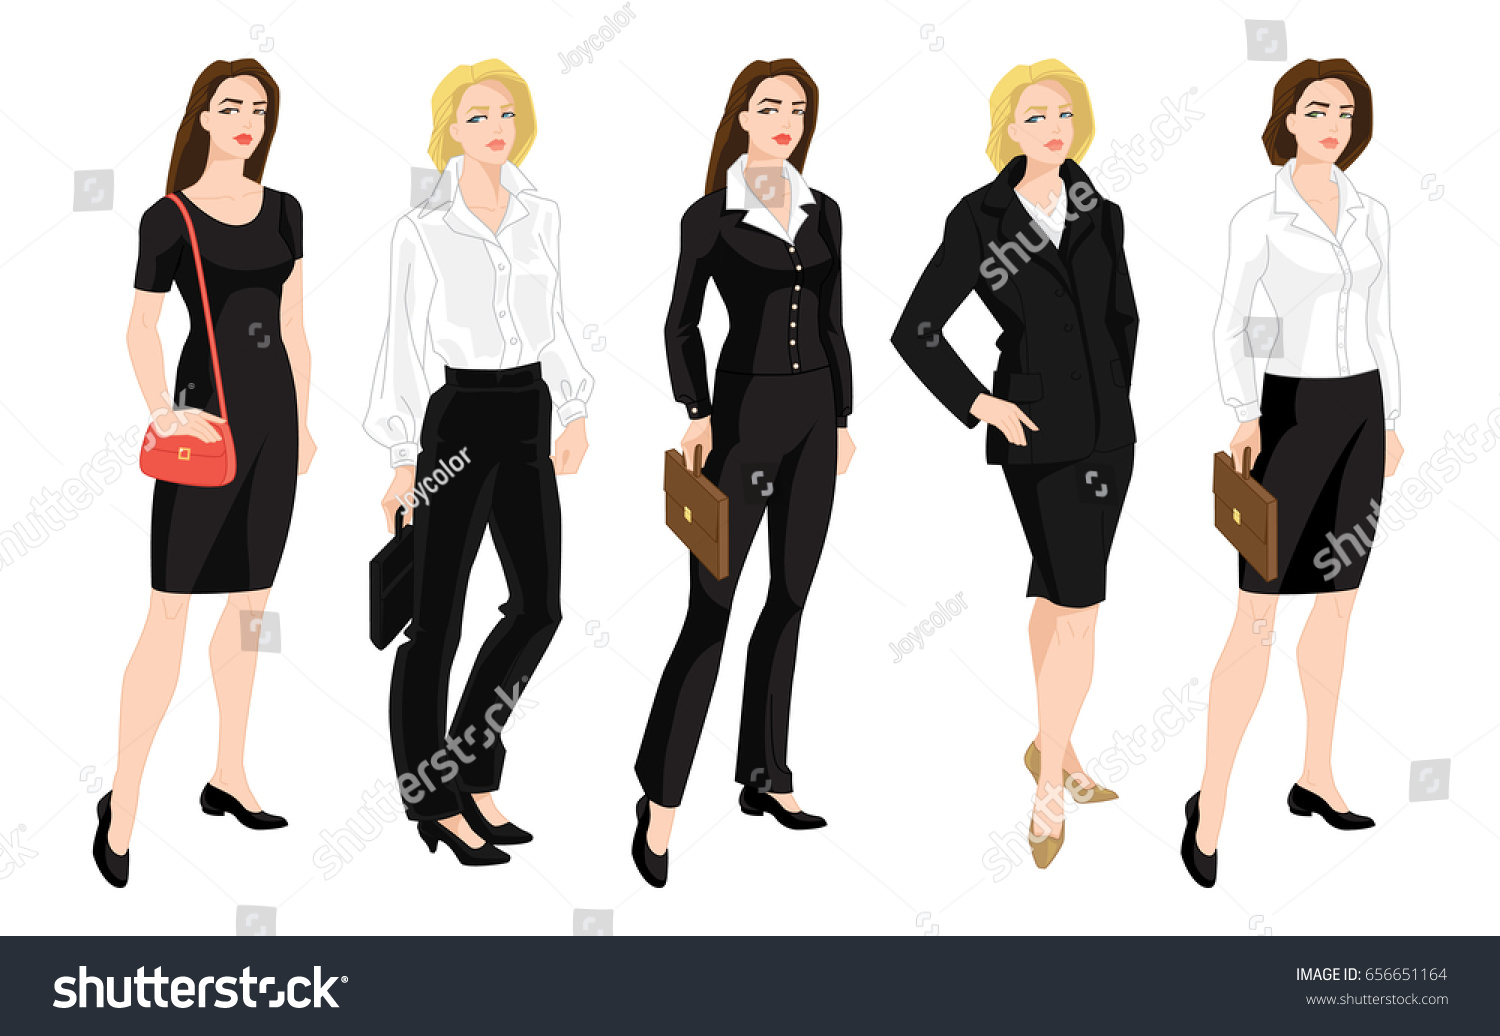 dress code formal attire gallery dresses design ideas vector illustration corporate dress code business stock vector - Dress Design Ideas